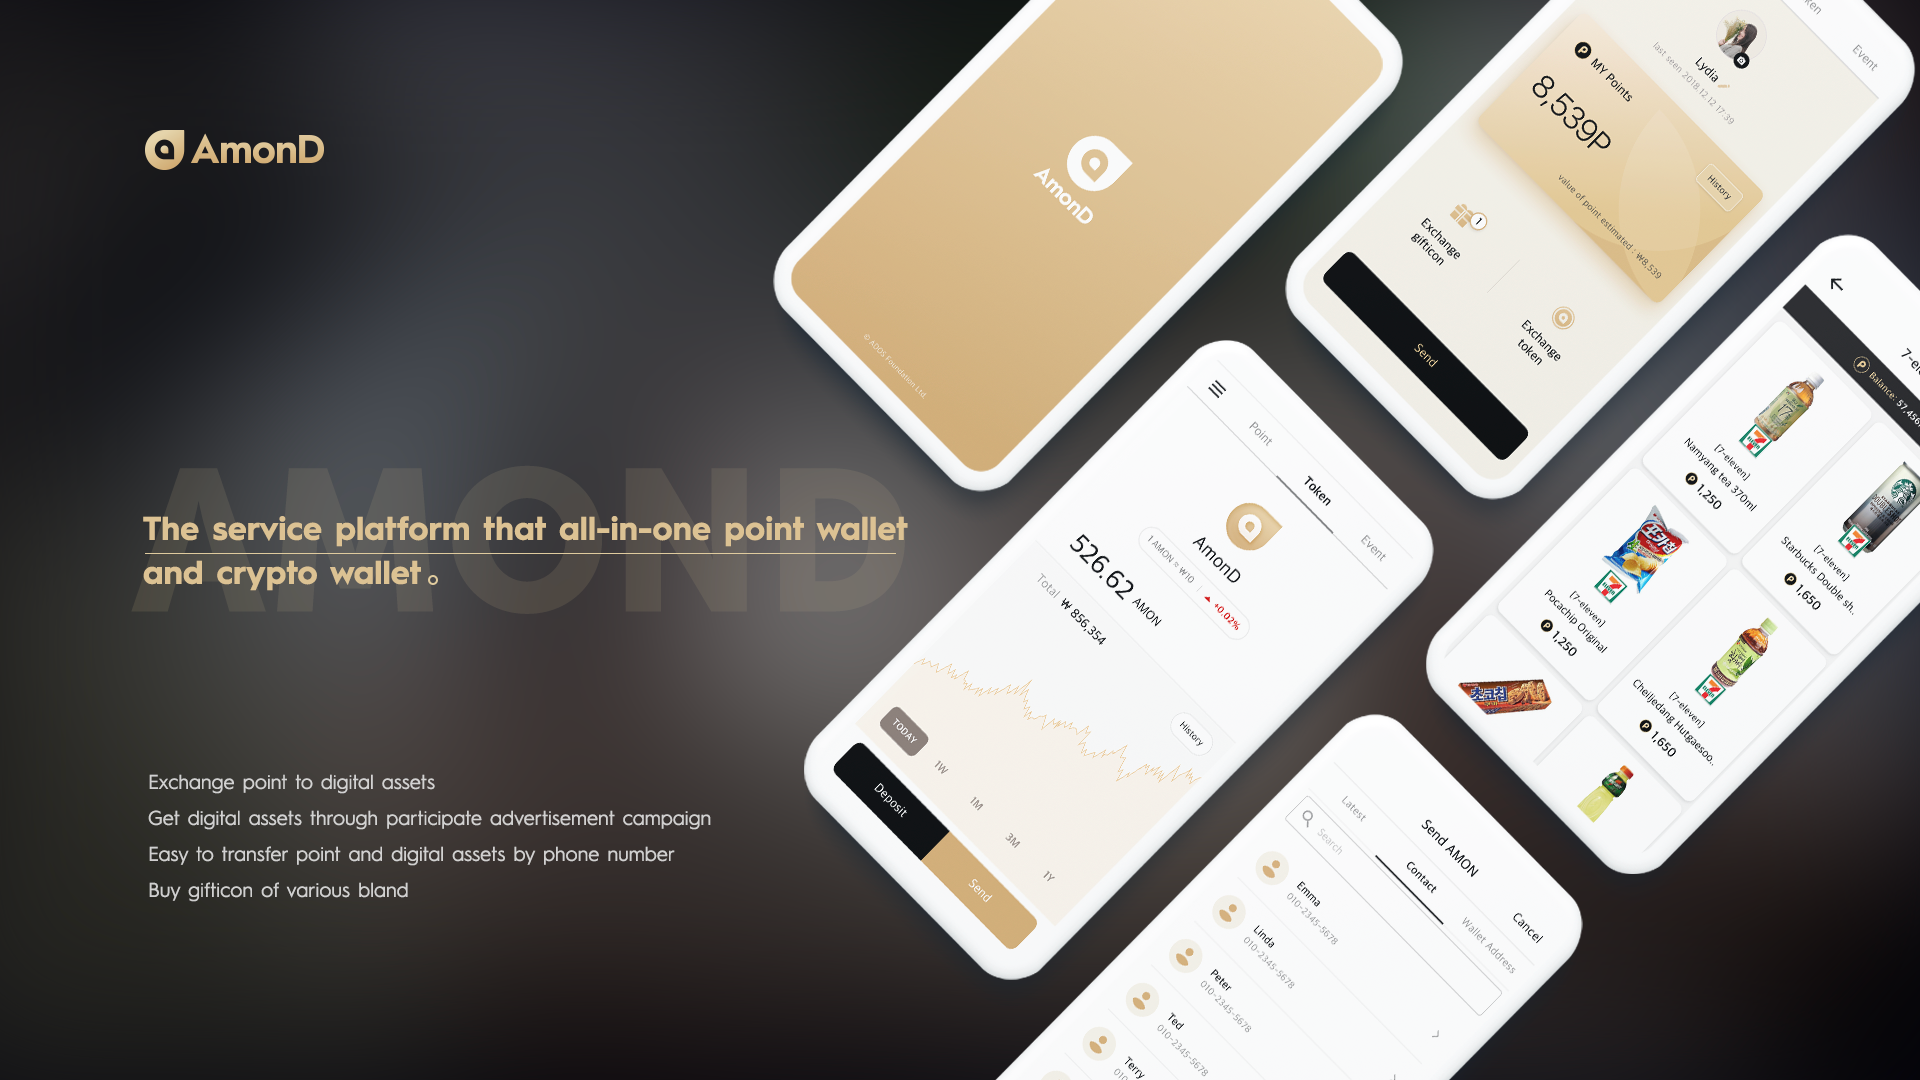 Main App - The main app is an all-in one service platform that combines crypto and point wallets. User can earn our points by participating in advertising campaigns, and they can exchange points with mobile vouchers and tokens as well.In particular, the user can transfer tokens without crypto address by using a phone number. The app provides services to exchange mobile voucher and digital currency by the world's best level of UX.